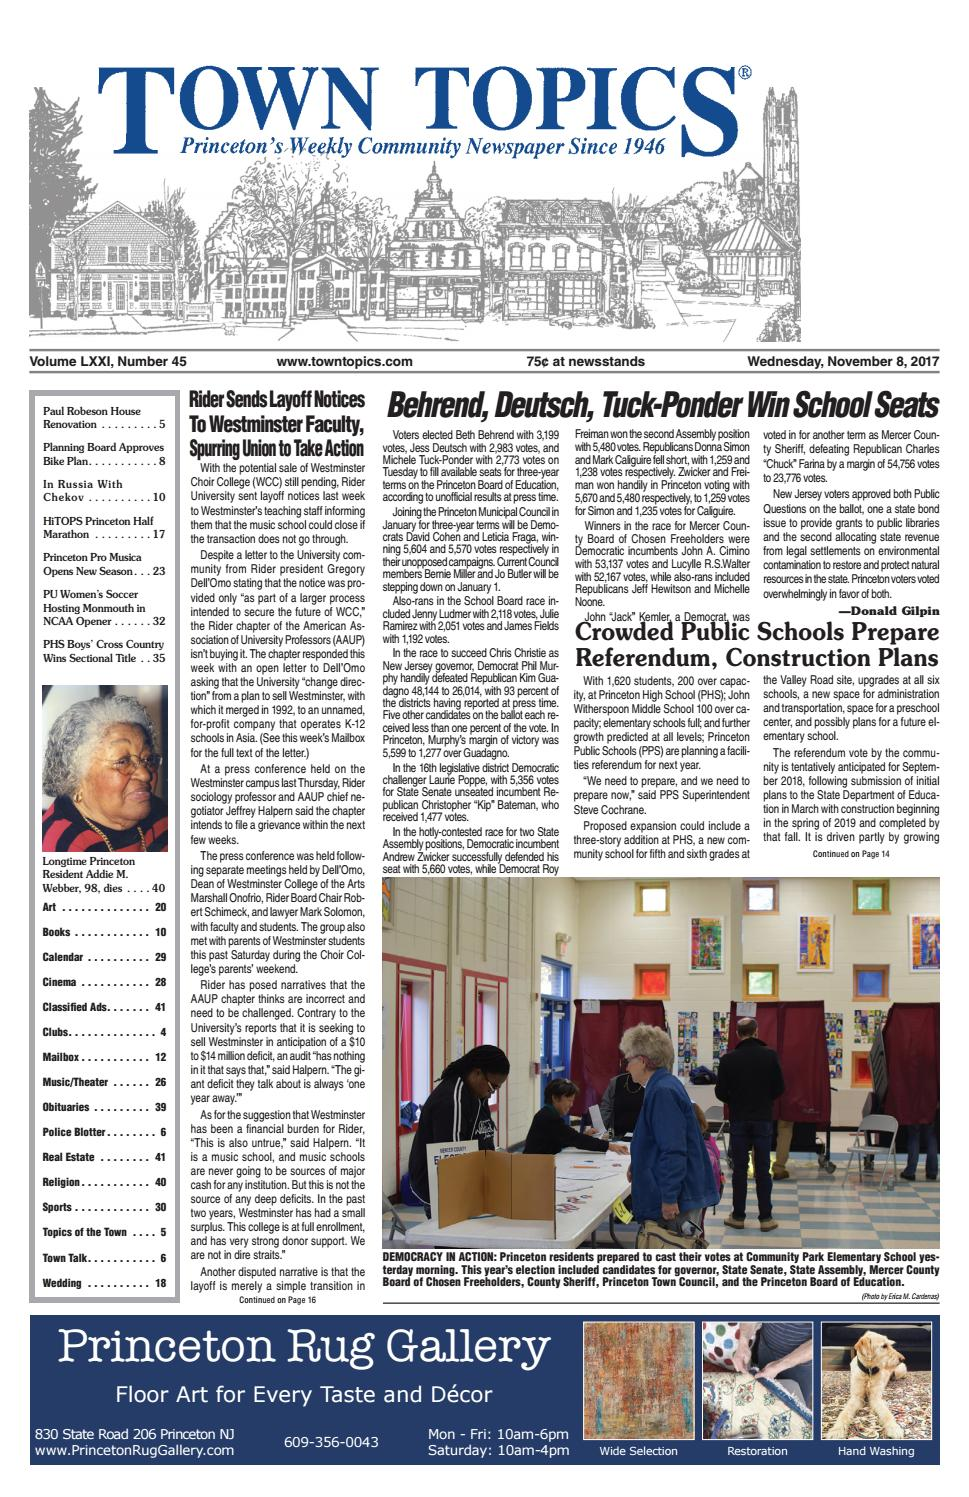 Town Topics Newspaper November 8 2017 By Witherspoon Media Group Frame Pato Fx 1 Alloy Issuu